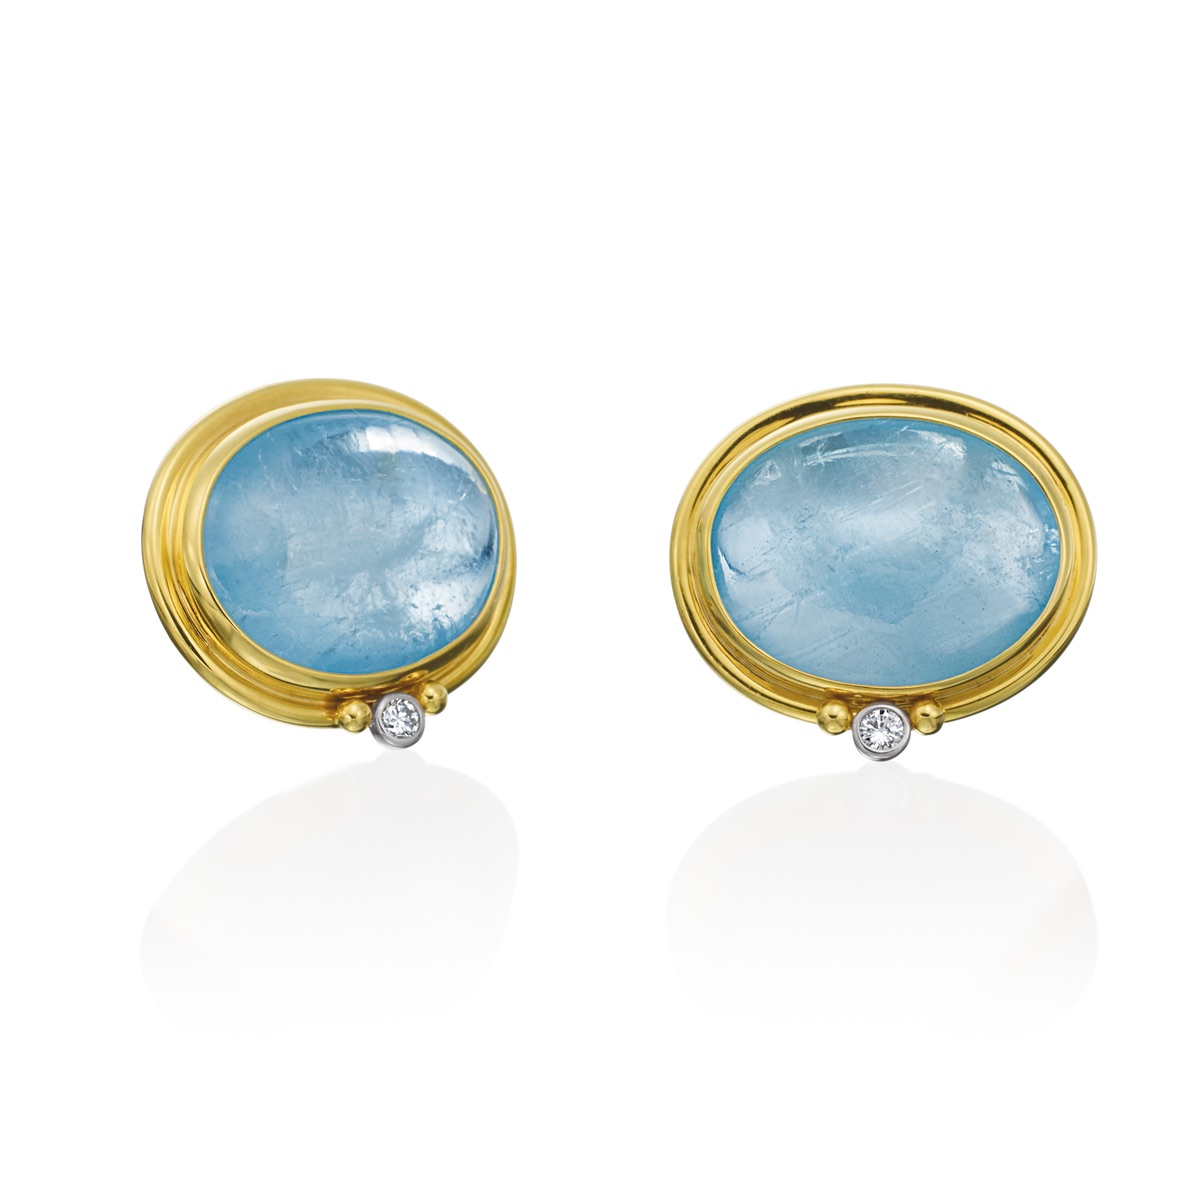 The Jewel - Mazza - Lookbook - Blue and Gold Oval Earrings